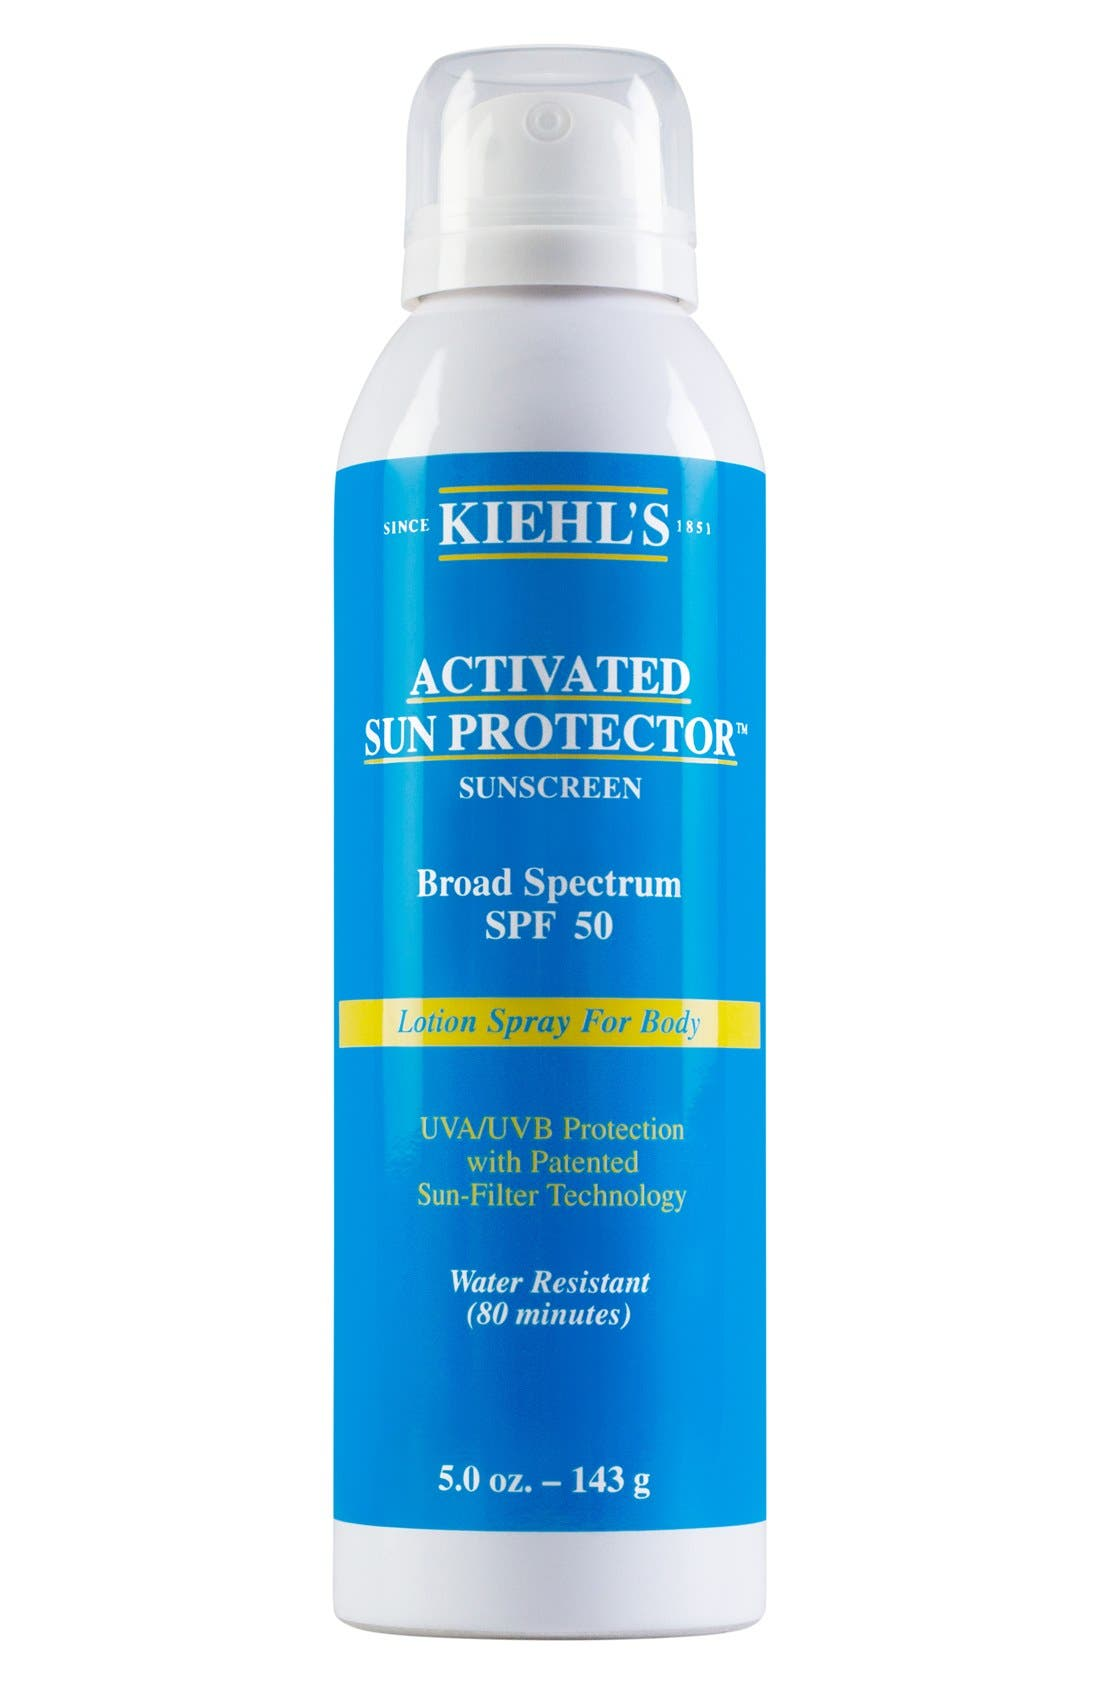 'Activated Sun Protector' Sunscreen Lotion Spray for Body Broad Spectrum SPF 50,                             Main thumbnail 1, color,                             000